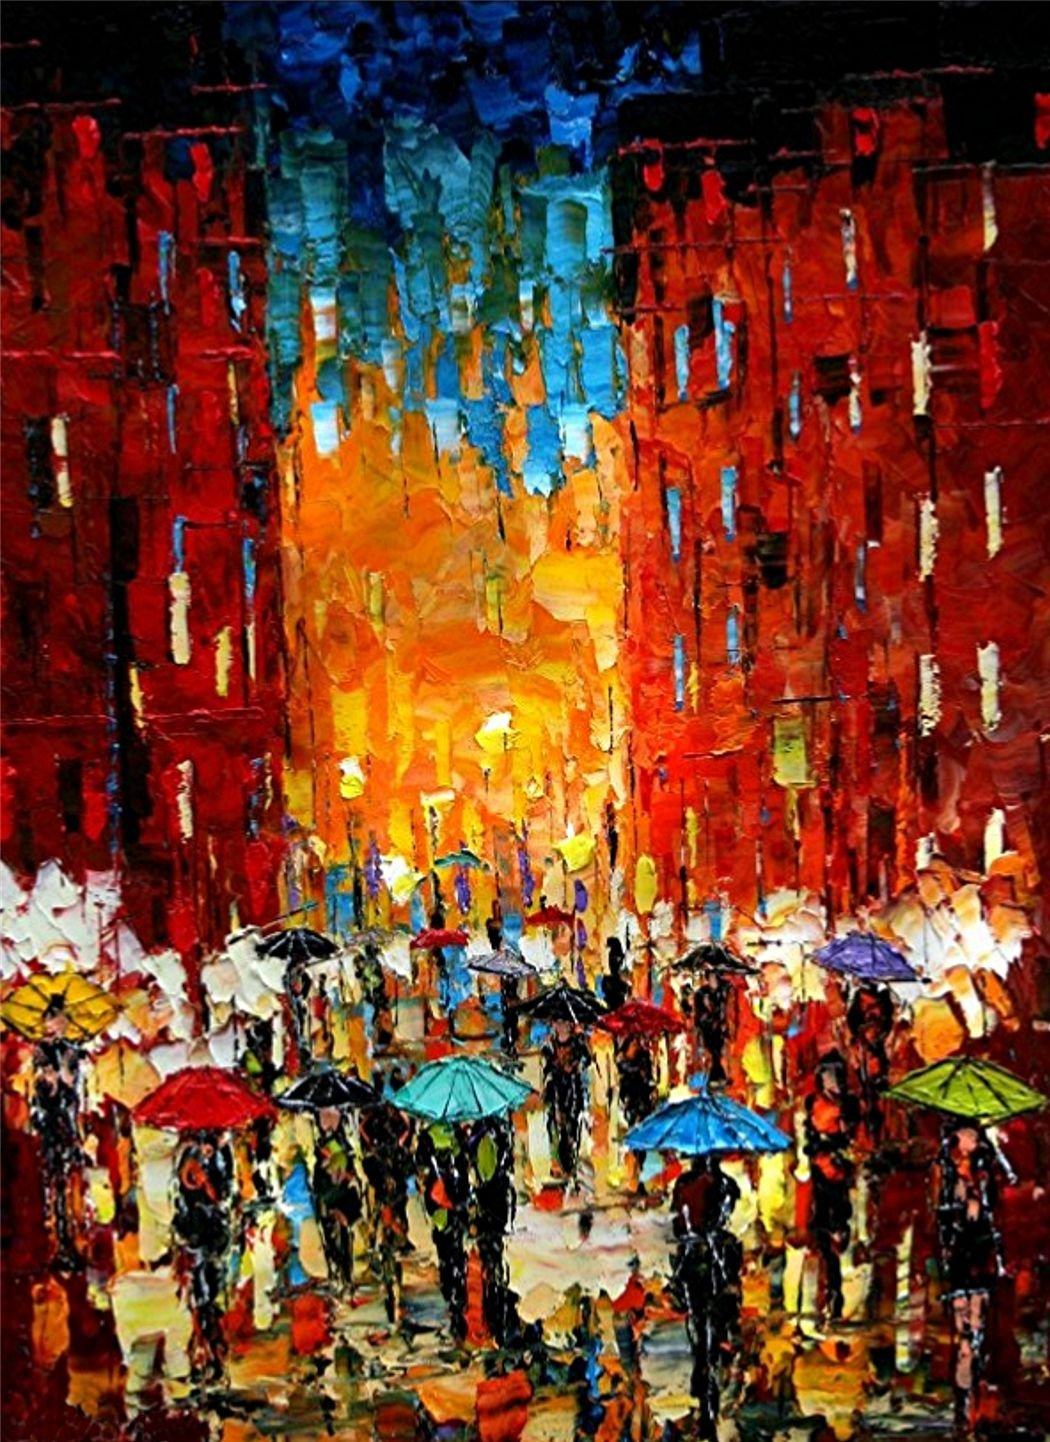 Big City Dreams, Limited Edition, Signed and Numbered Print by